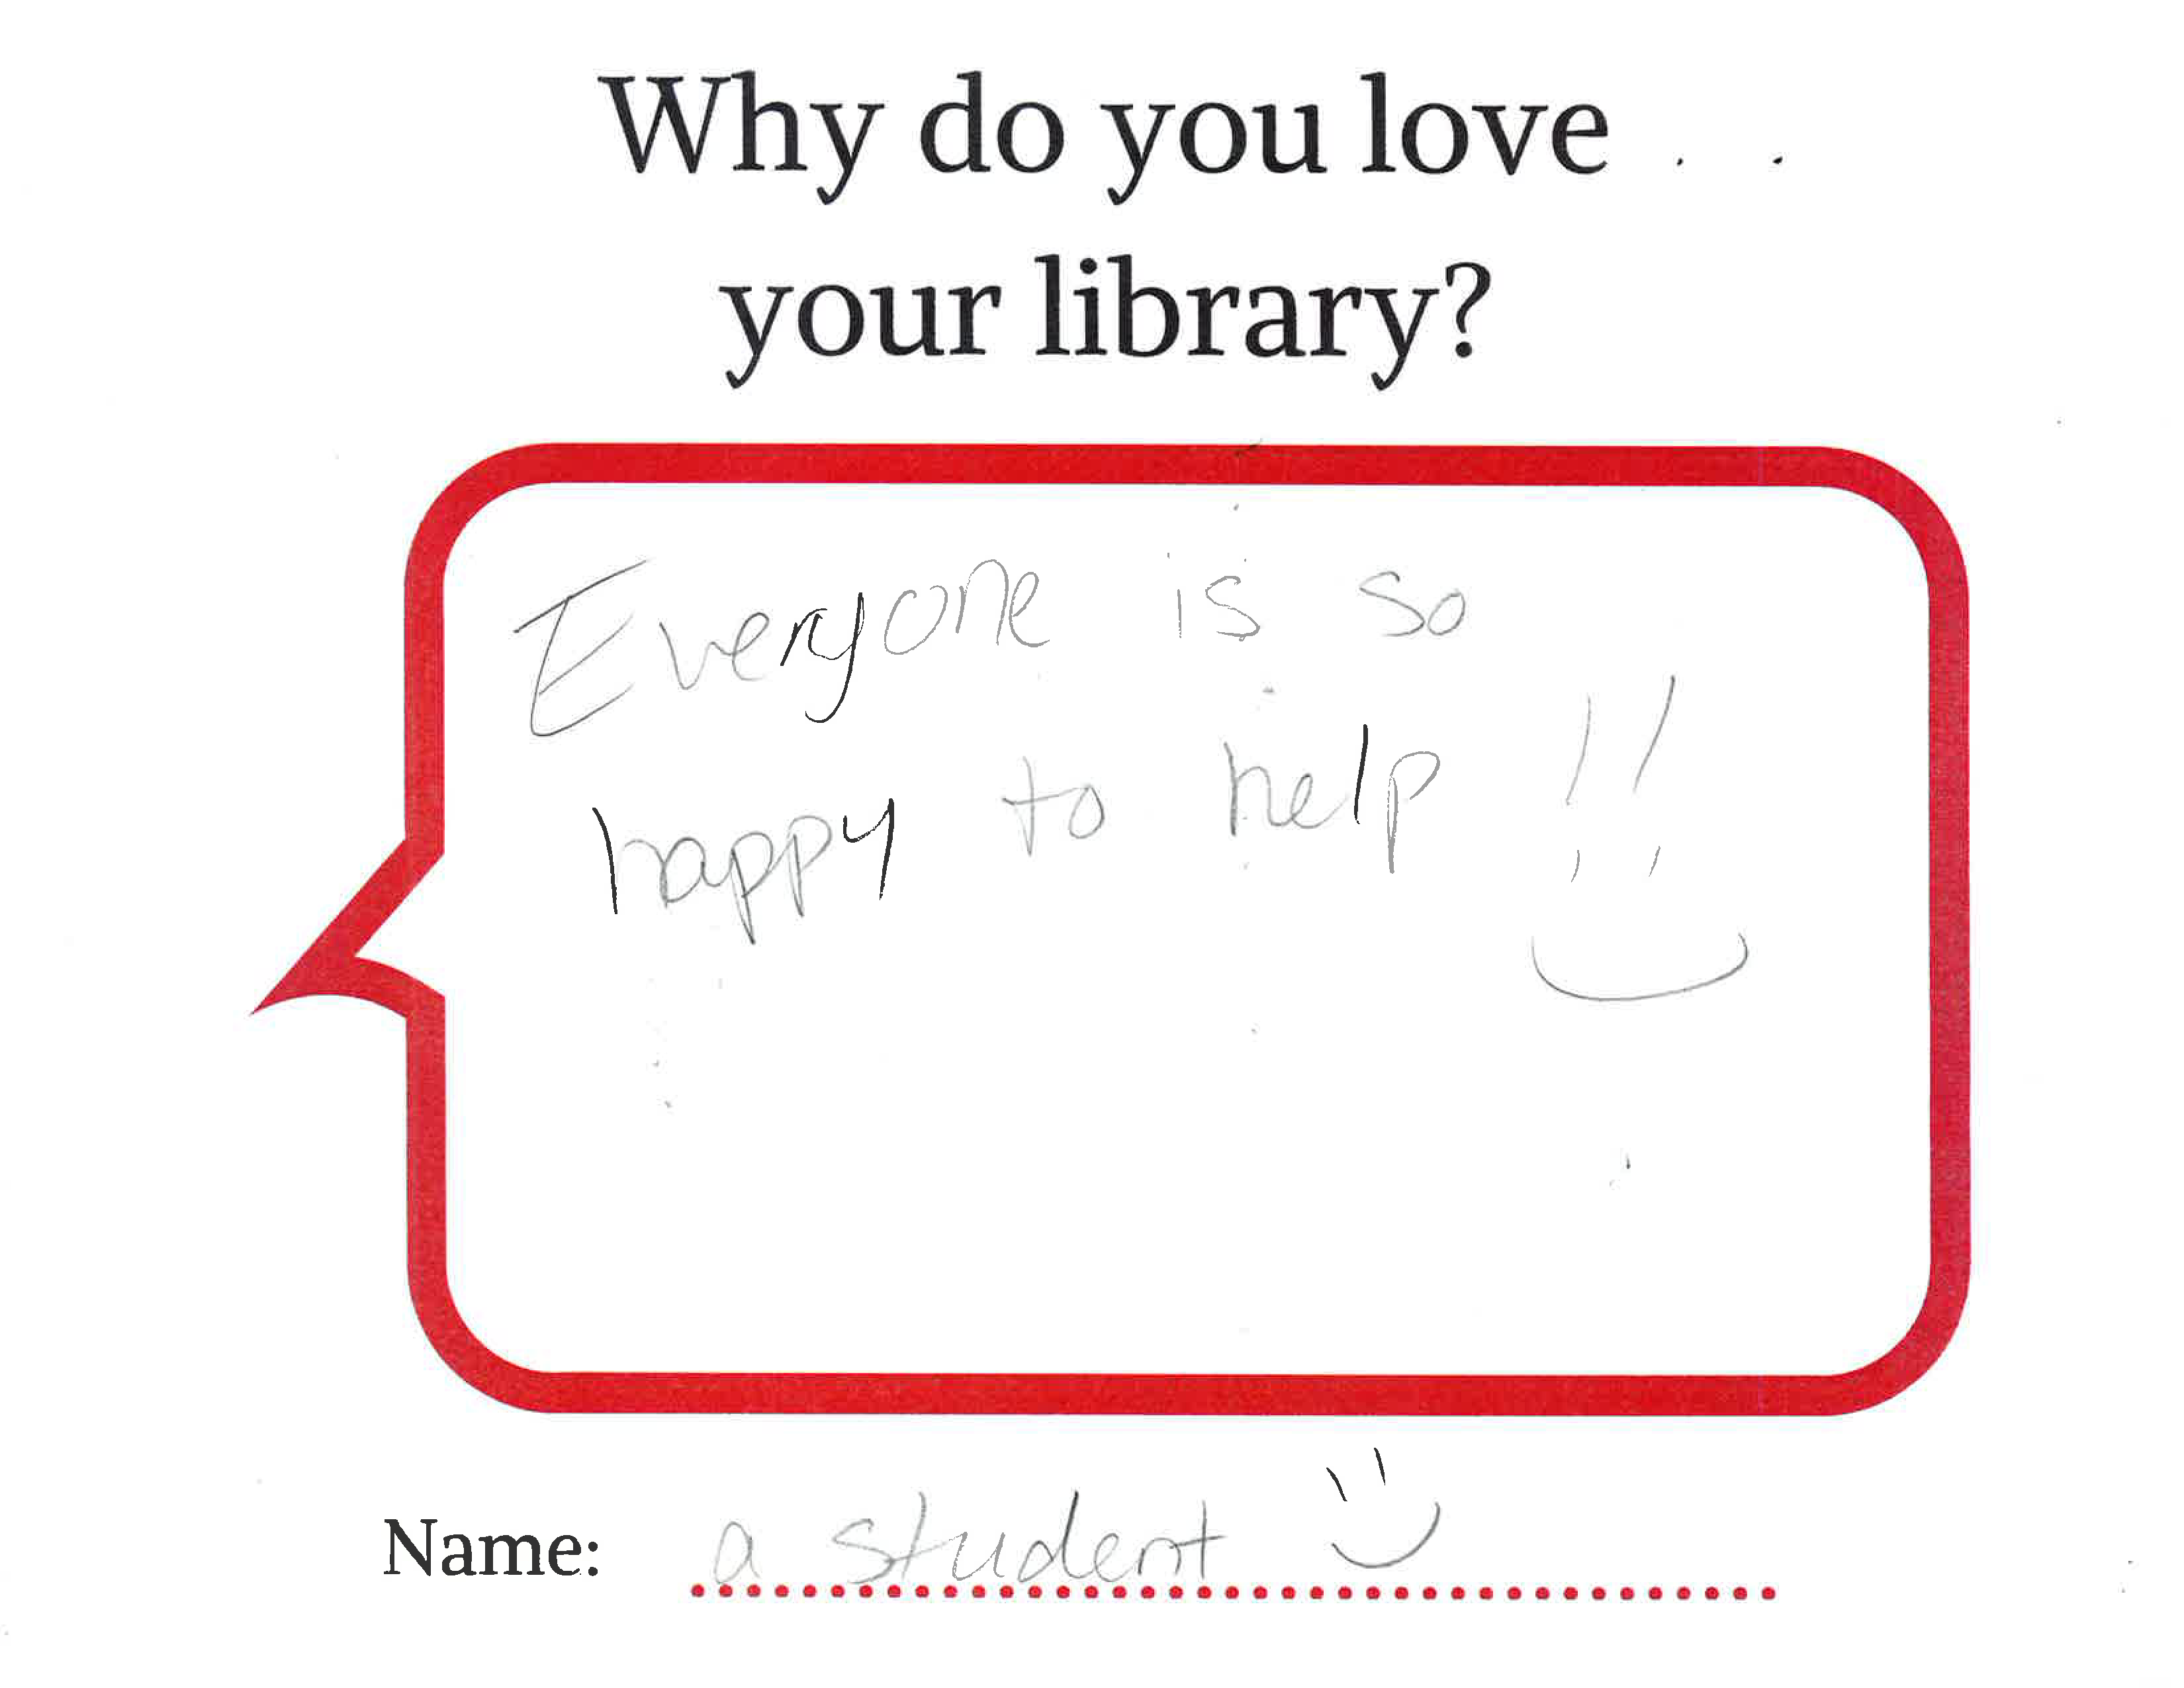 Why do you love your library?